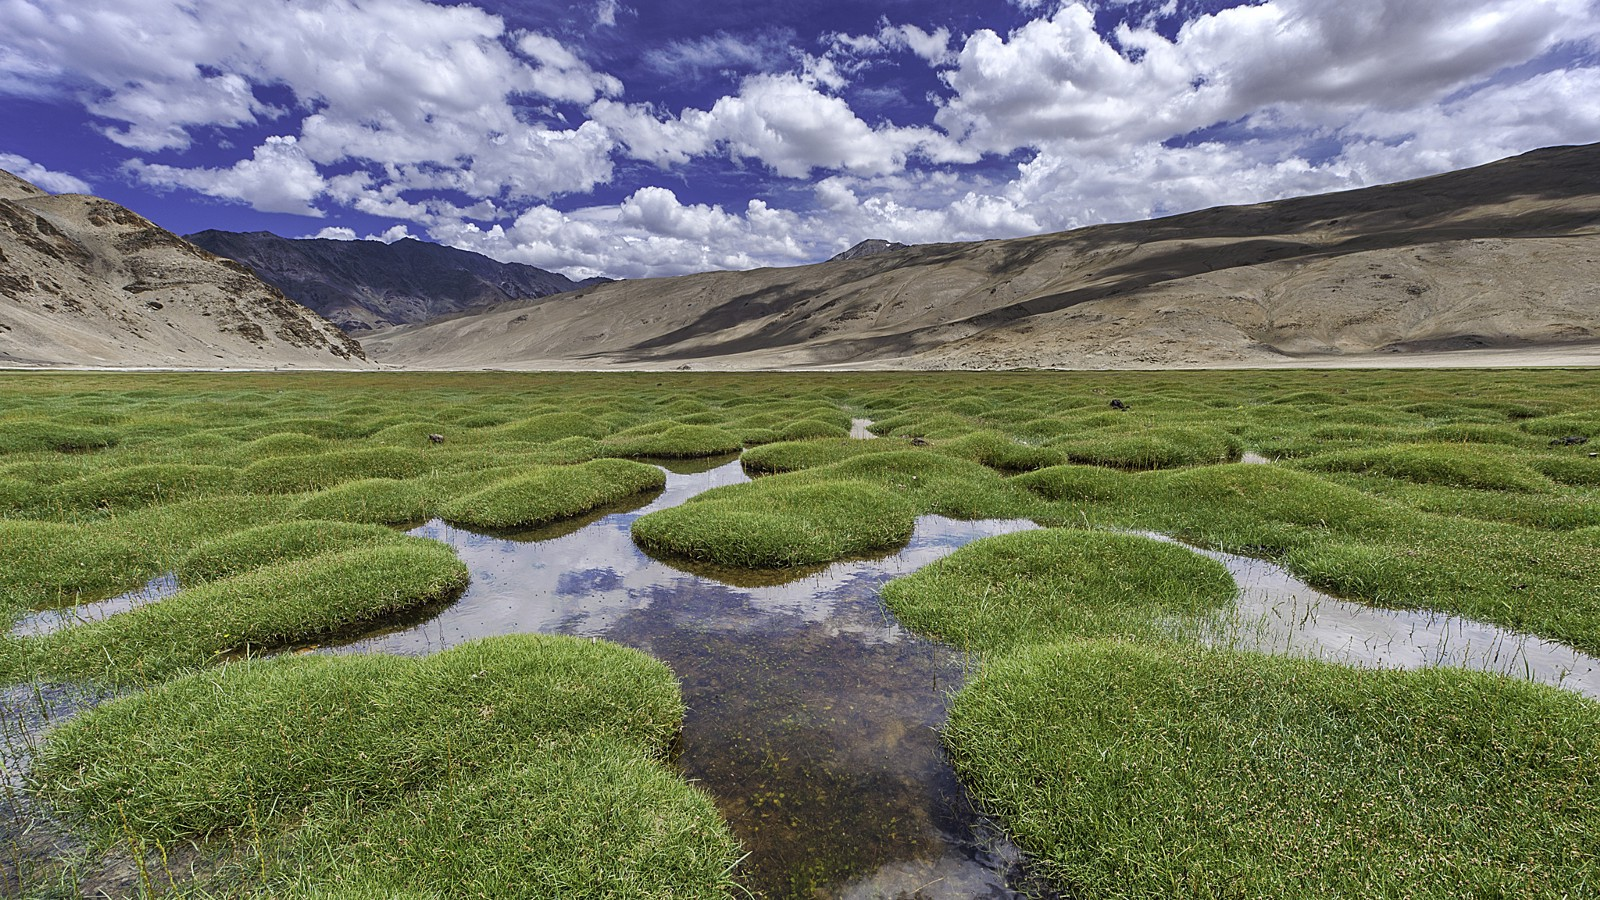 Puga grasslands, Ladakh region, India